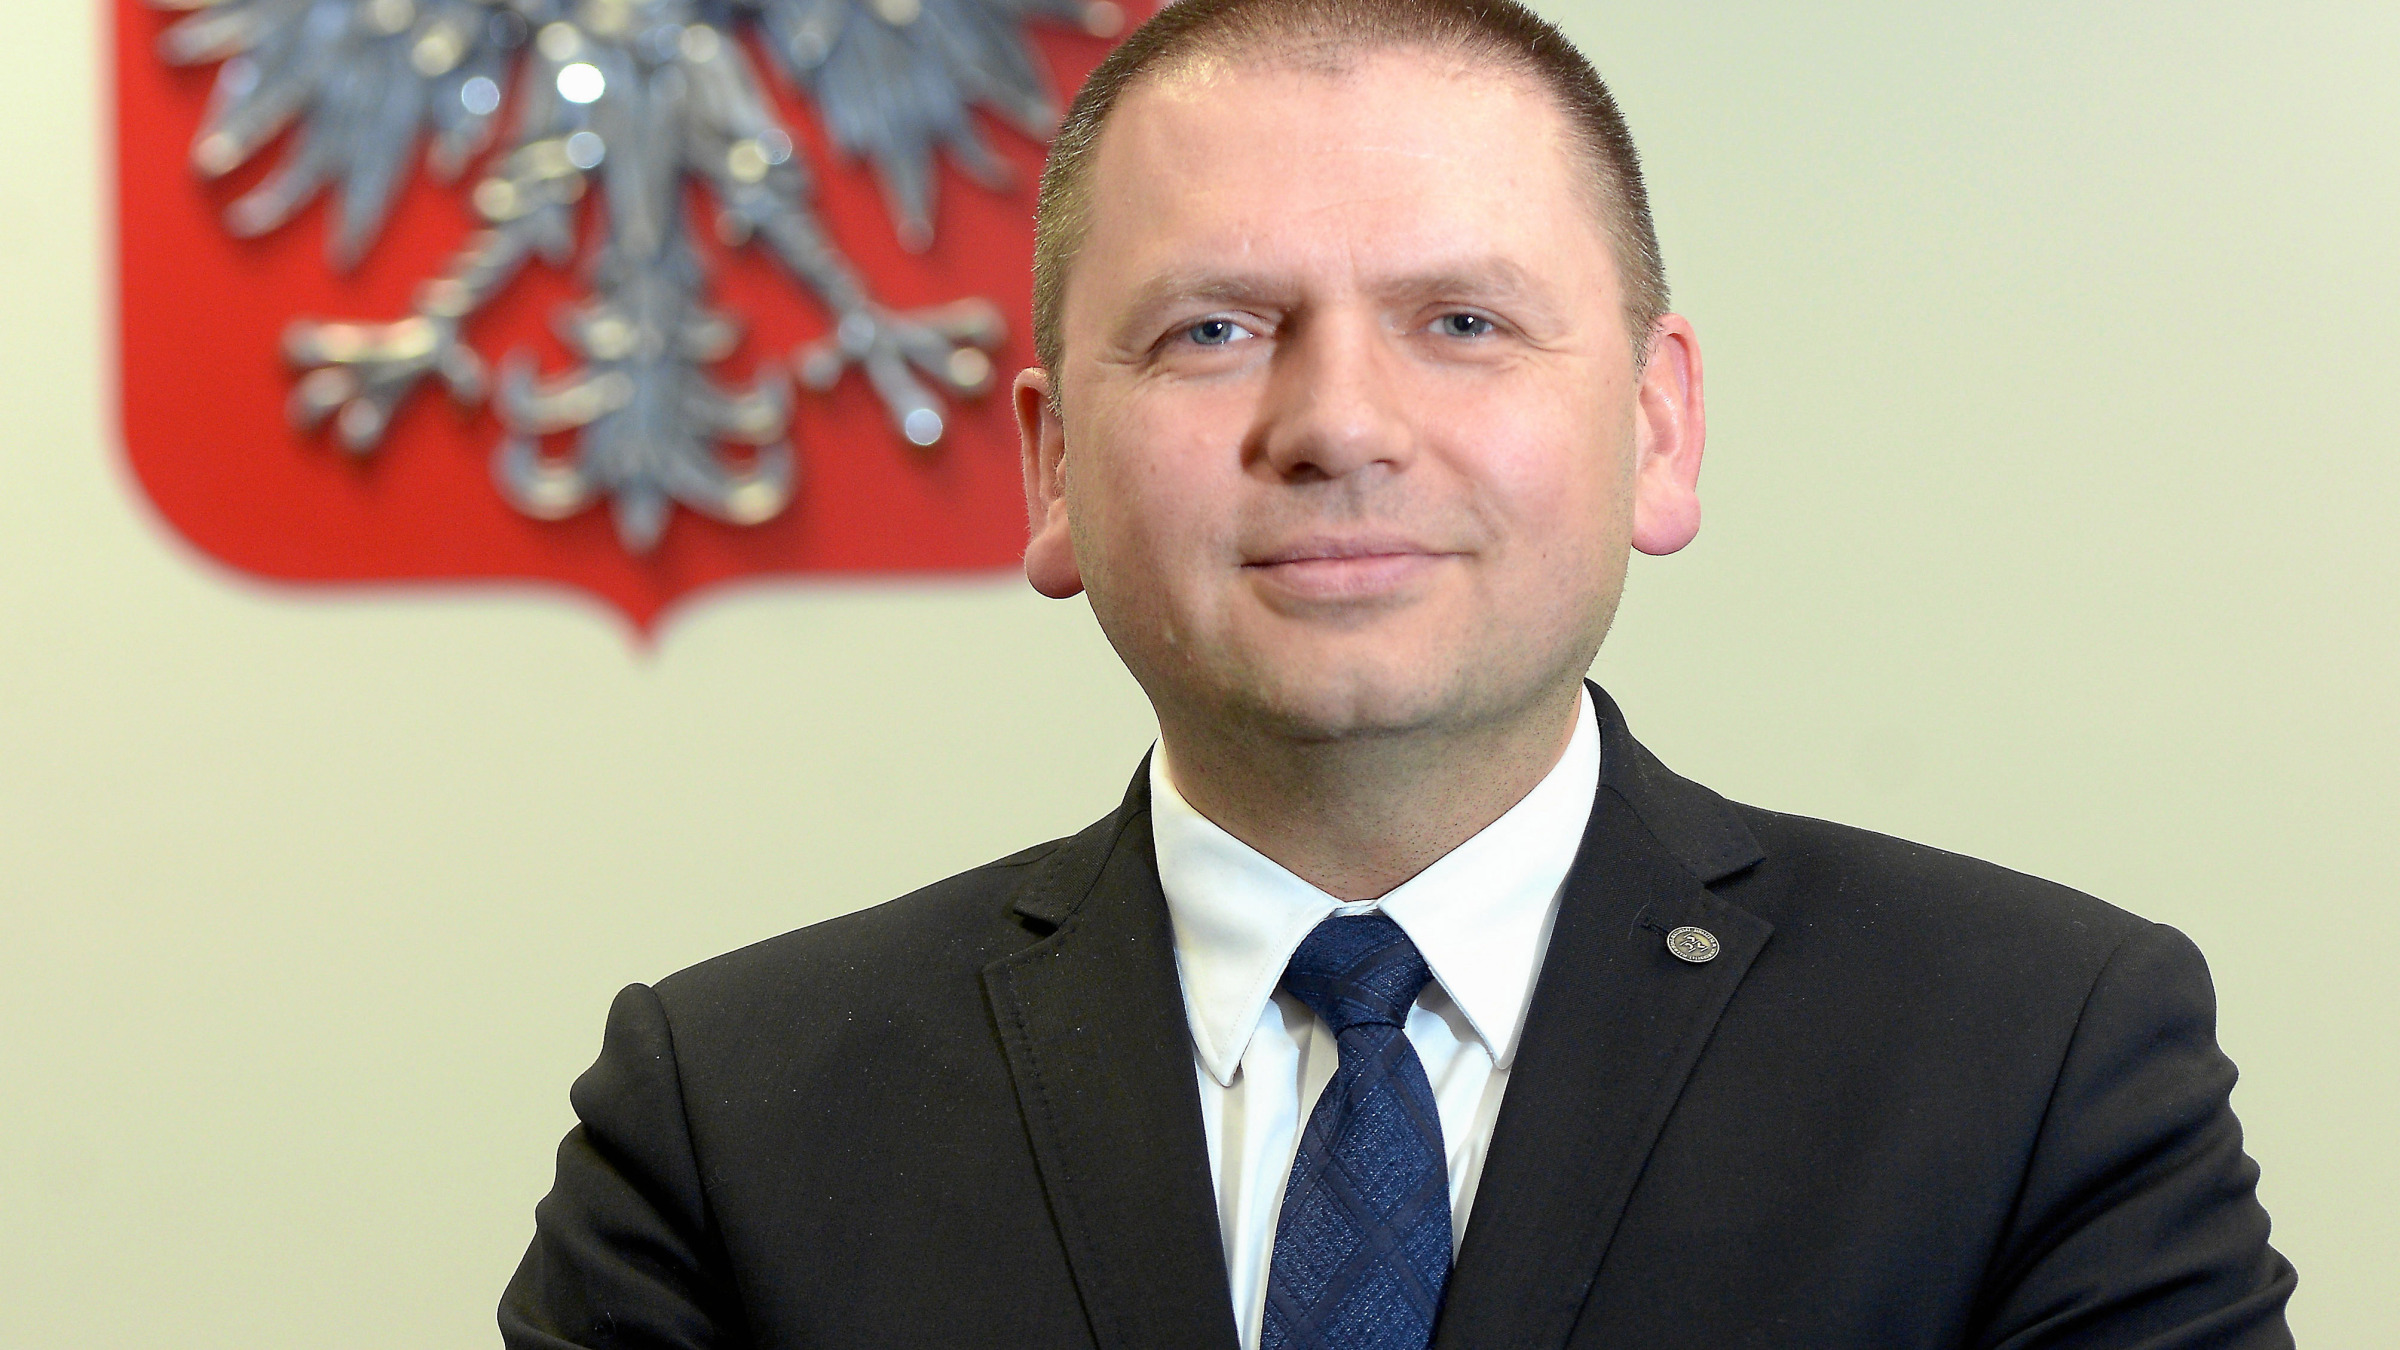 Maciej Nawacki admits to having signed his candidature for the national court register.